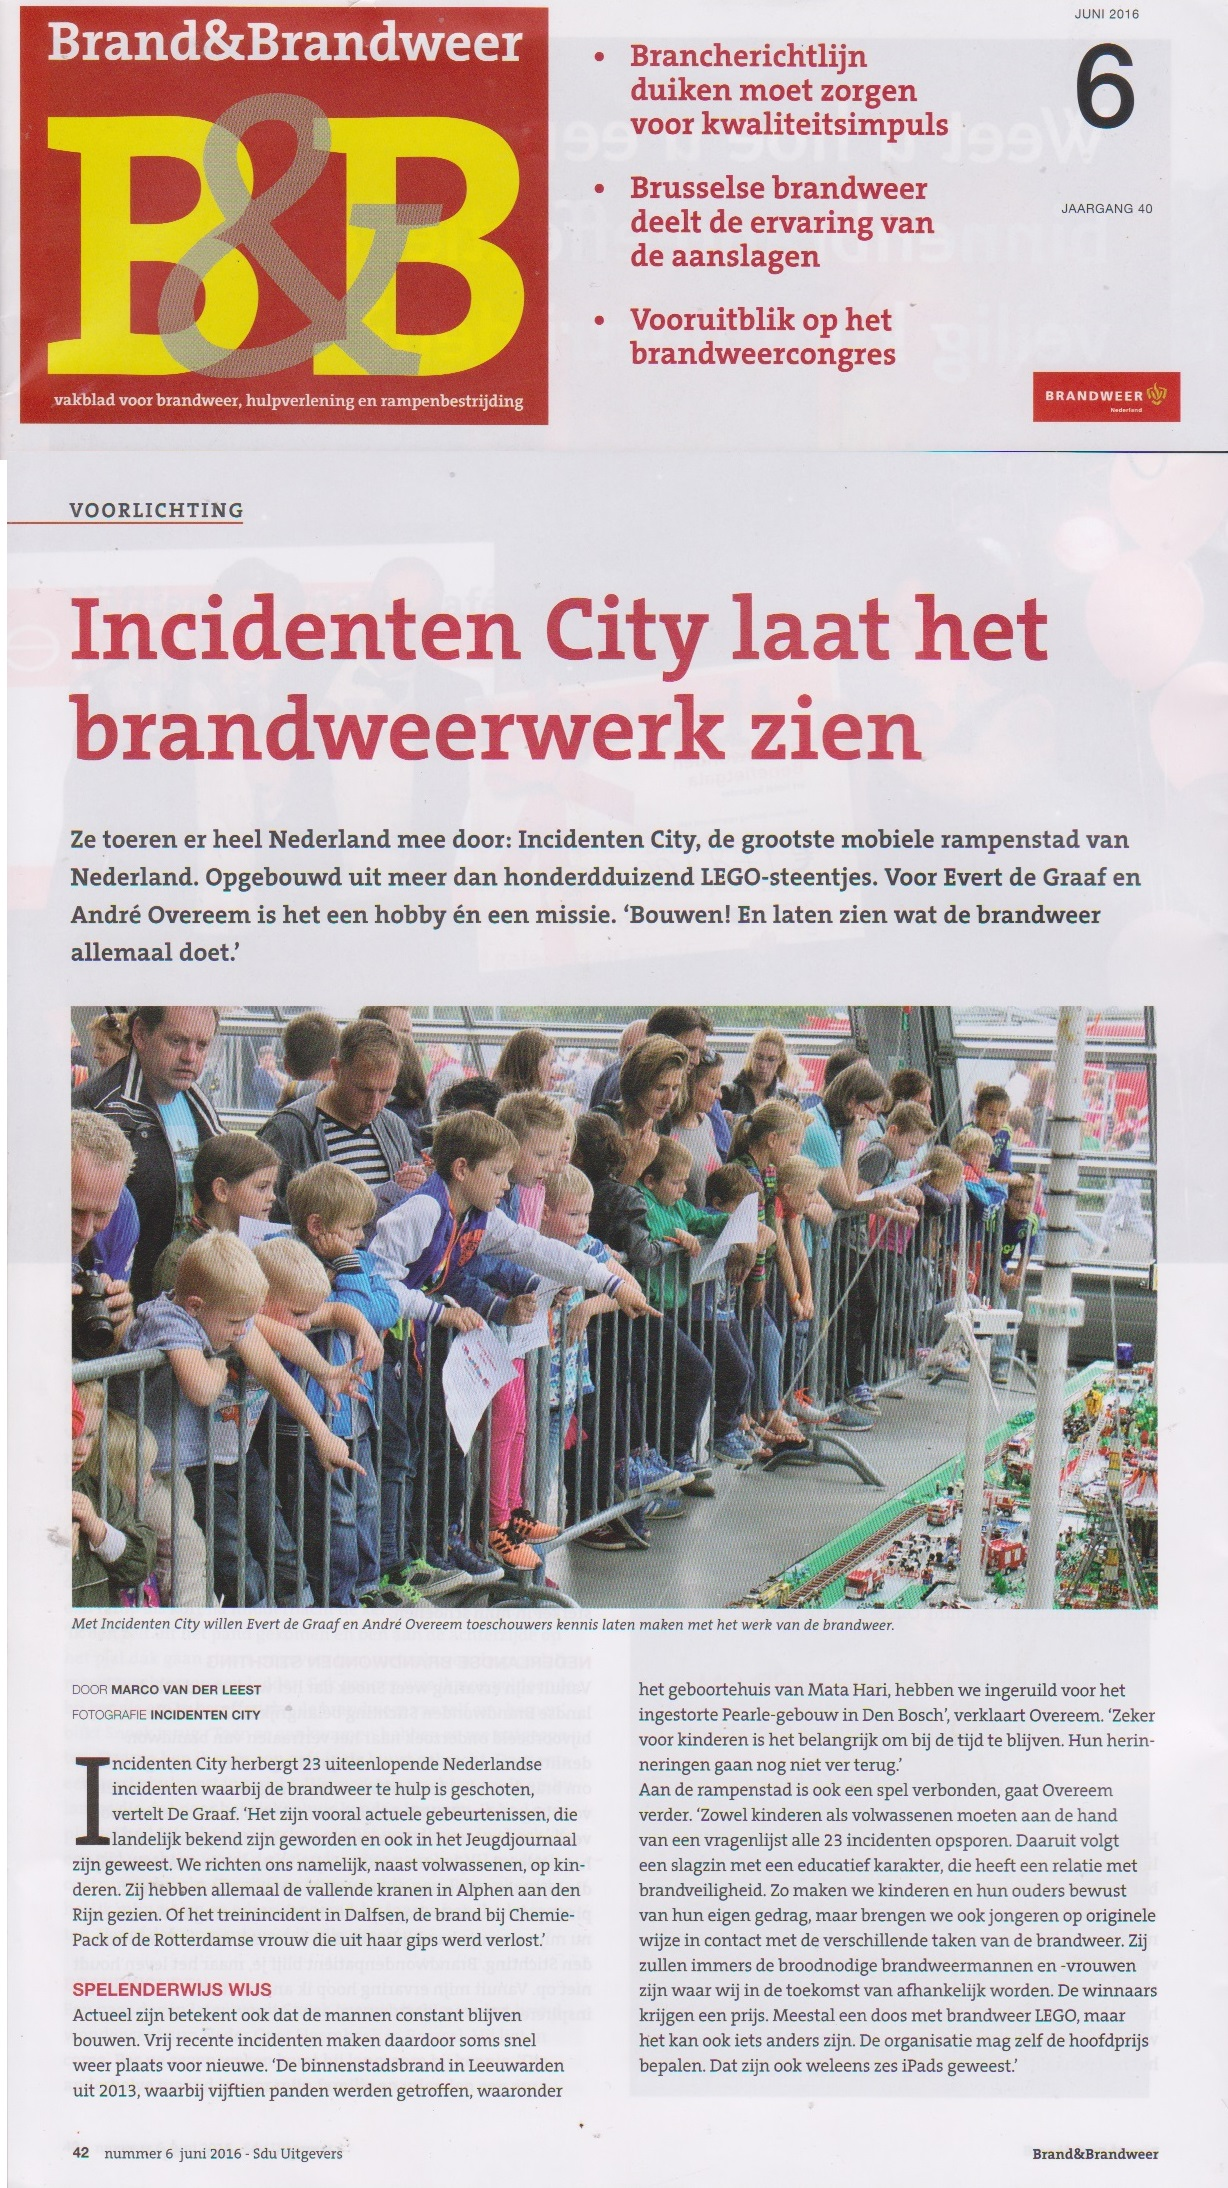 BB juni 2016 incidentencity